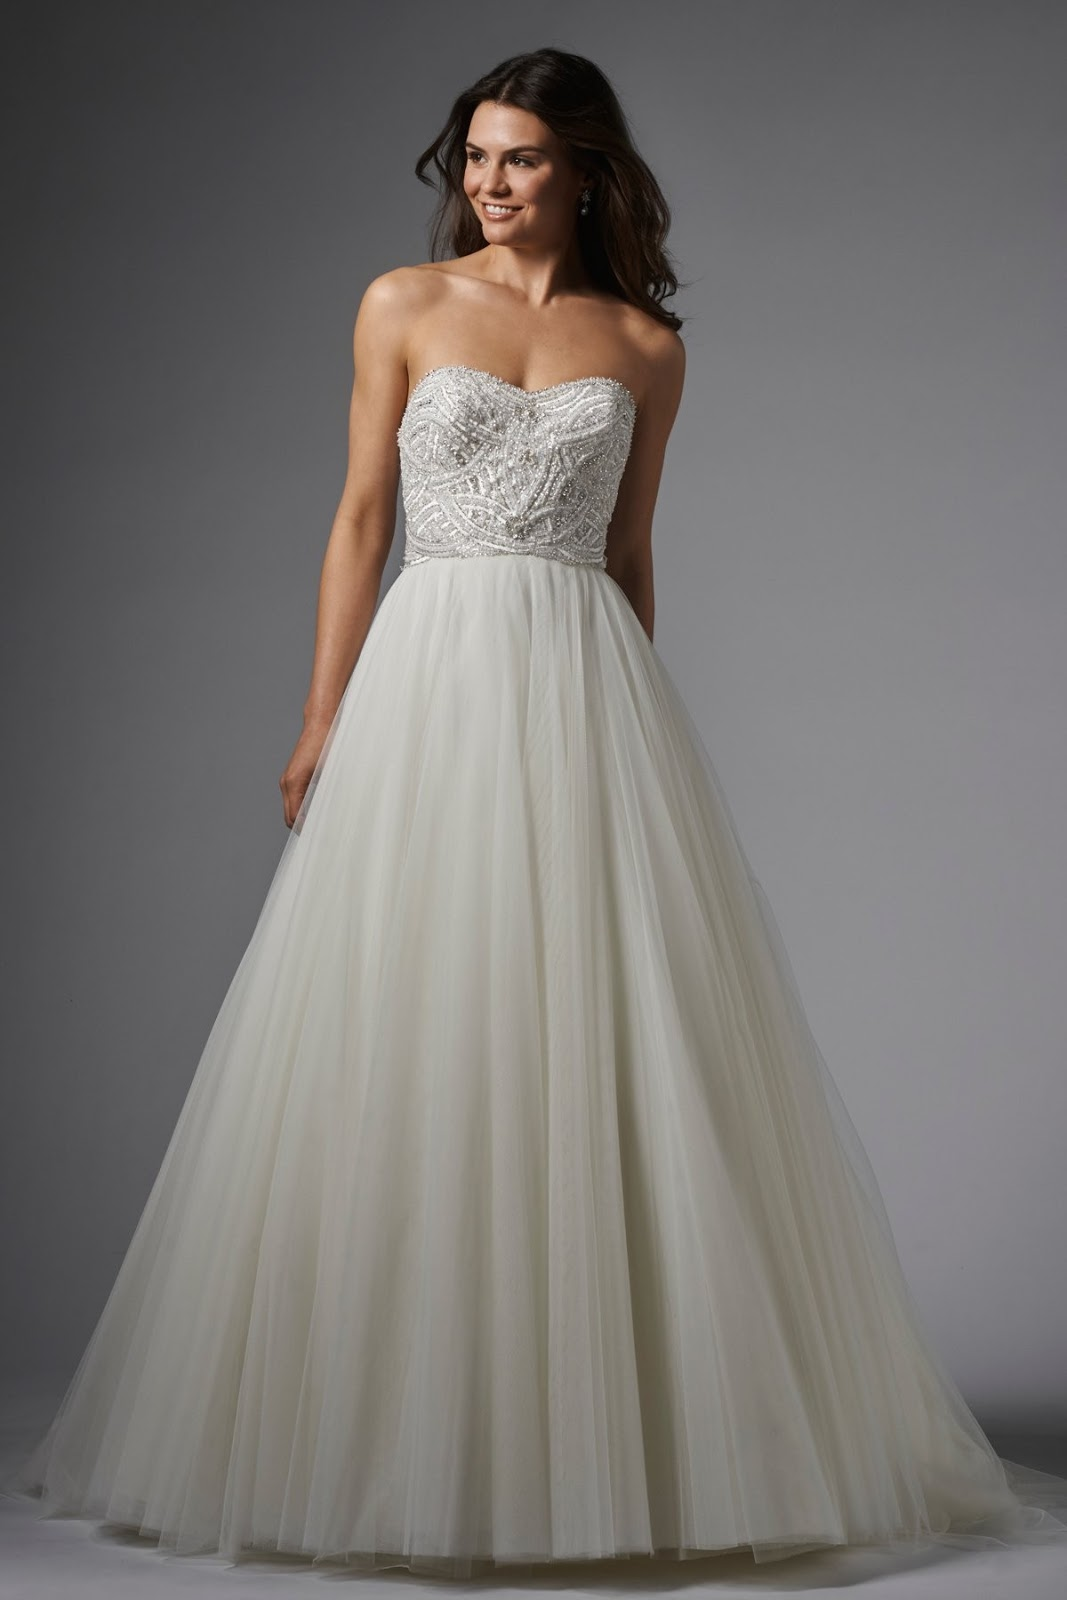 patterns for wedding dresses photo - 1